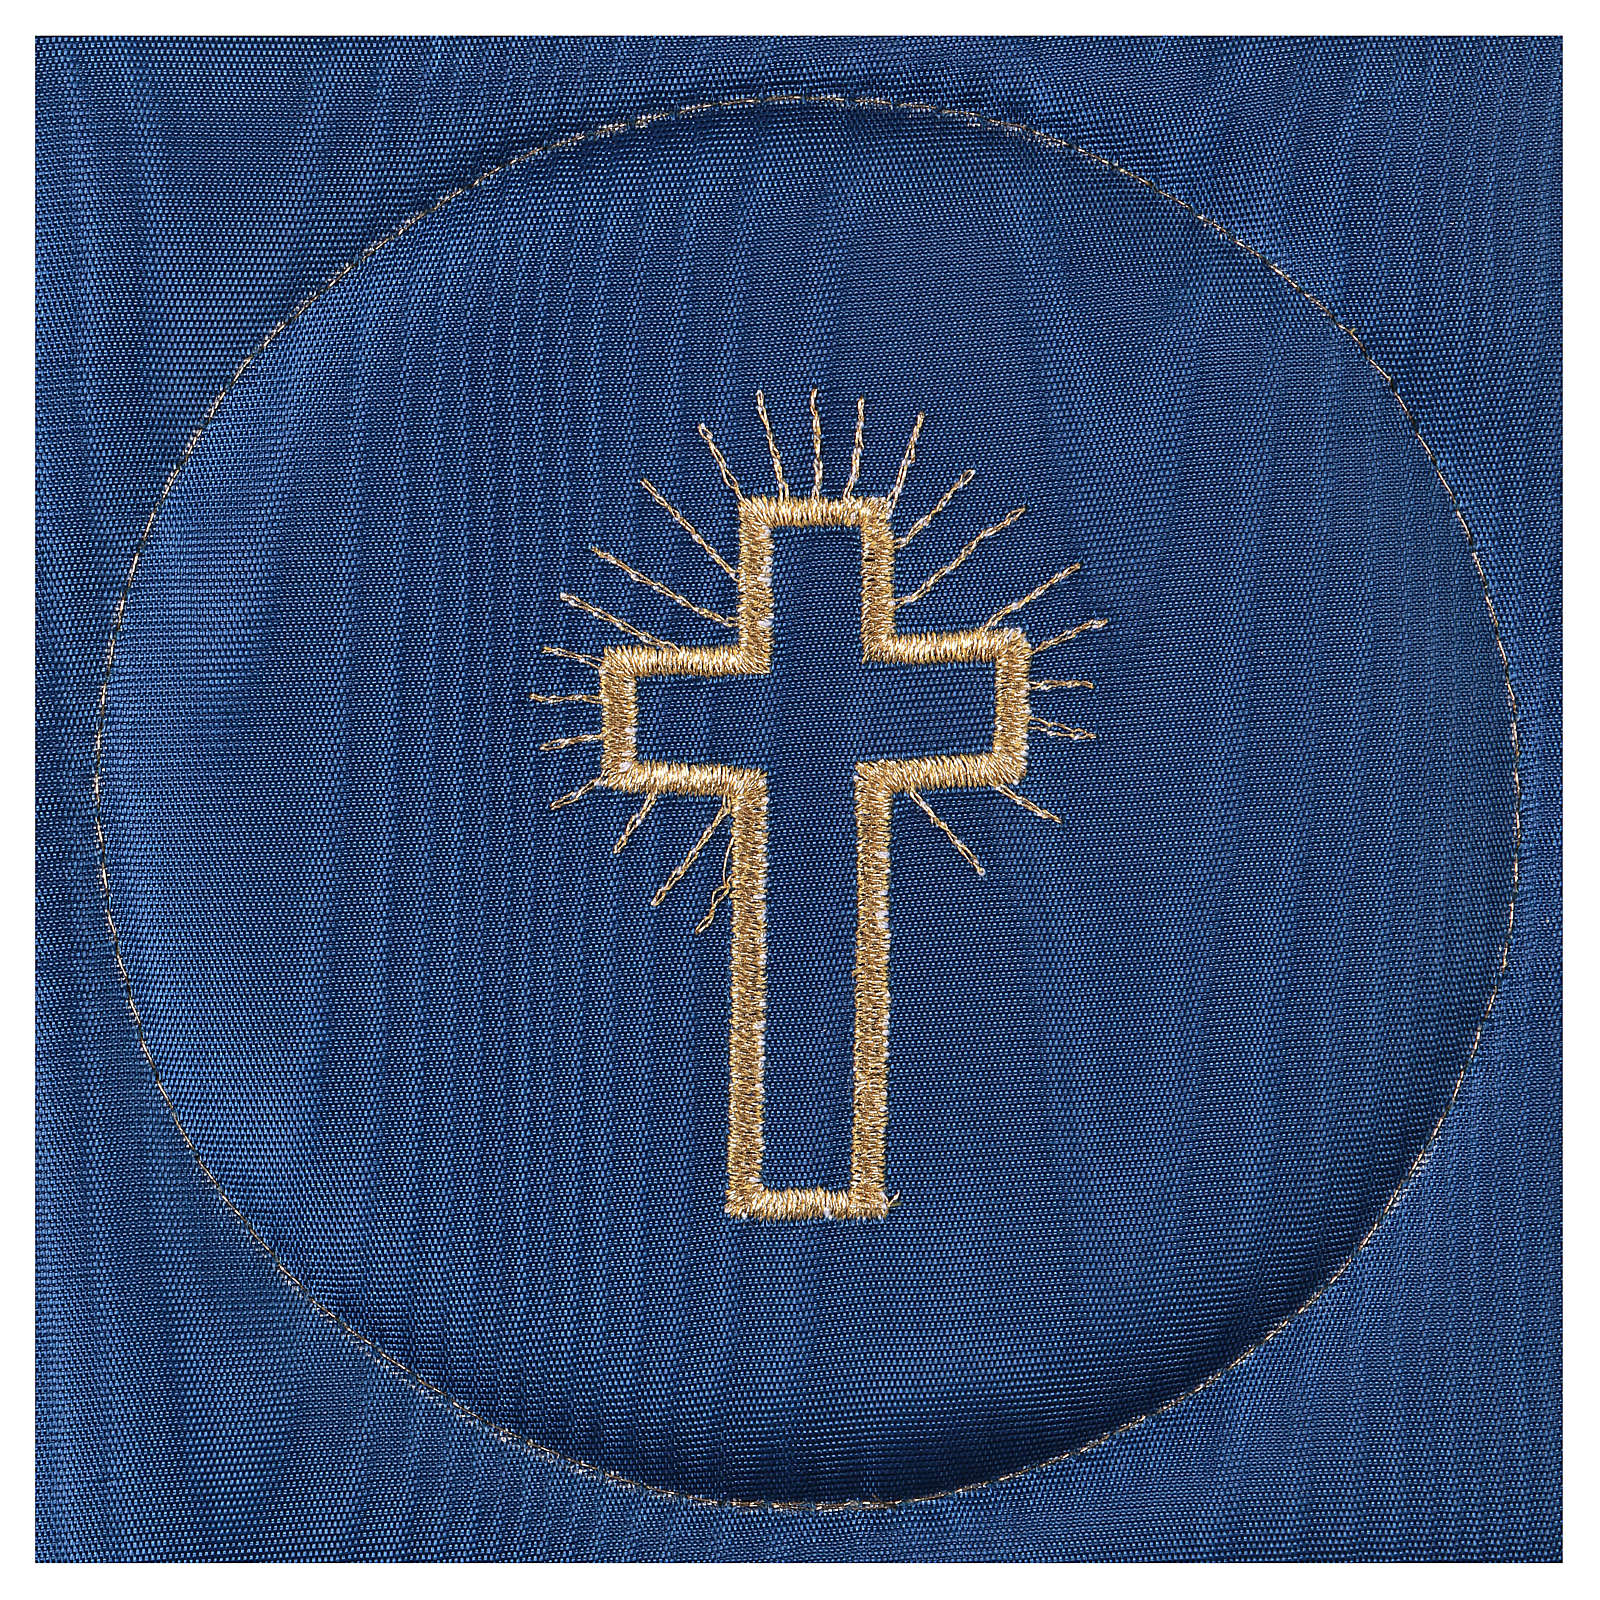 Chalice veil (pall) with cross embroidery on blue satin 4